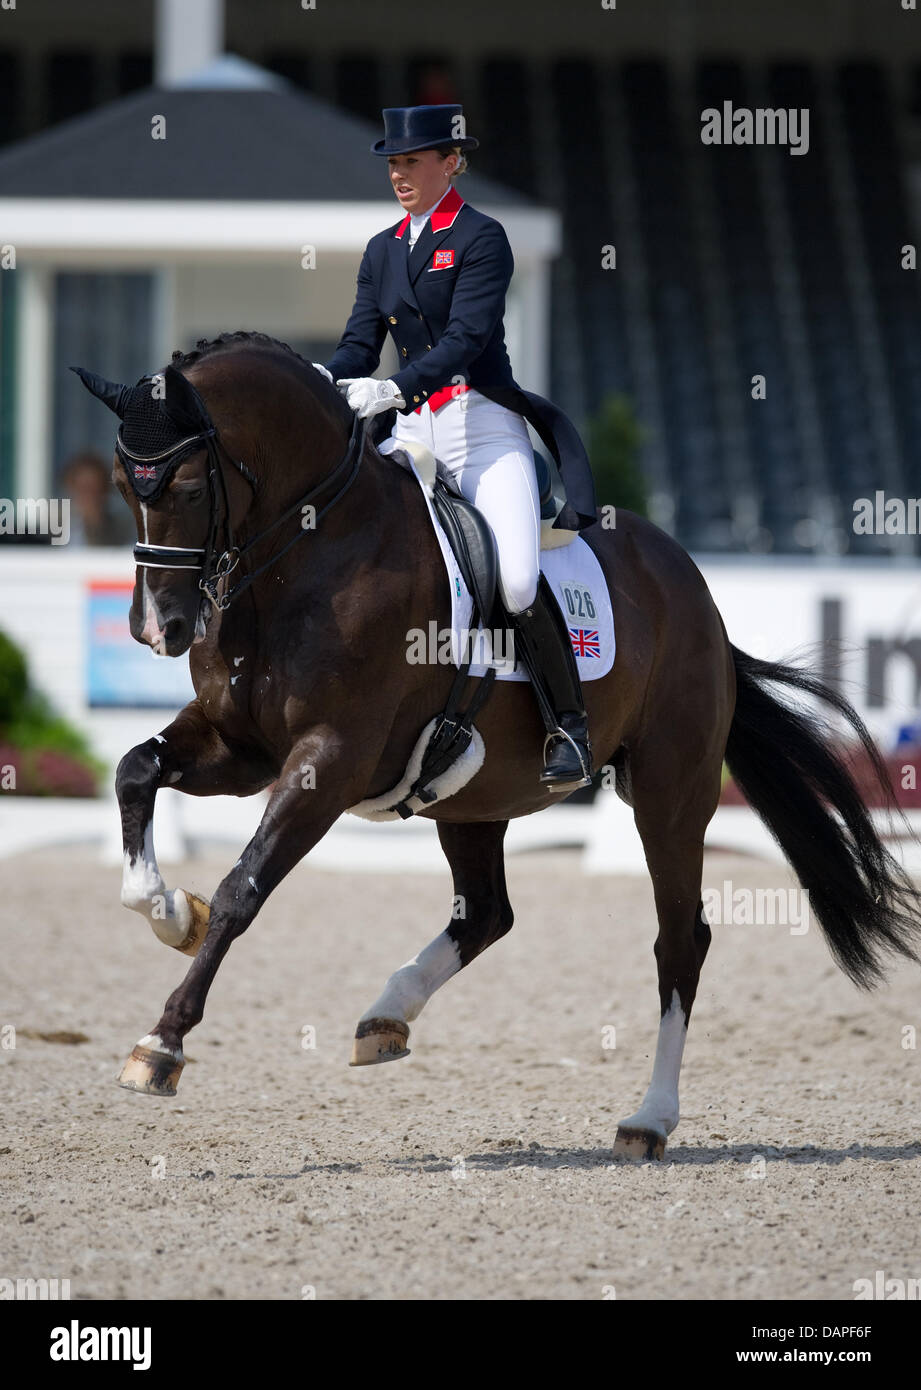 British dressage rider Charlotte Dujardin rides her horse Valegro during the team competition at the EuropeanDressage - Stock Image